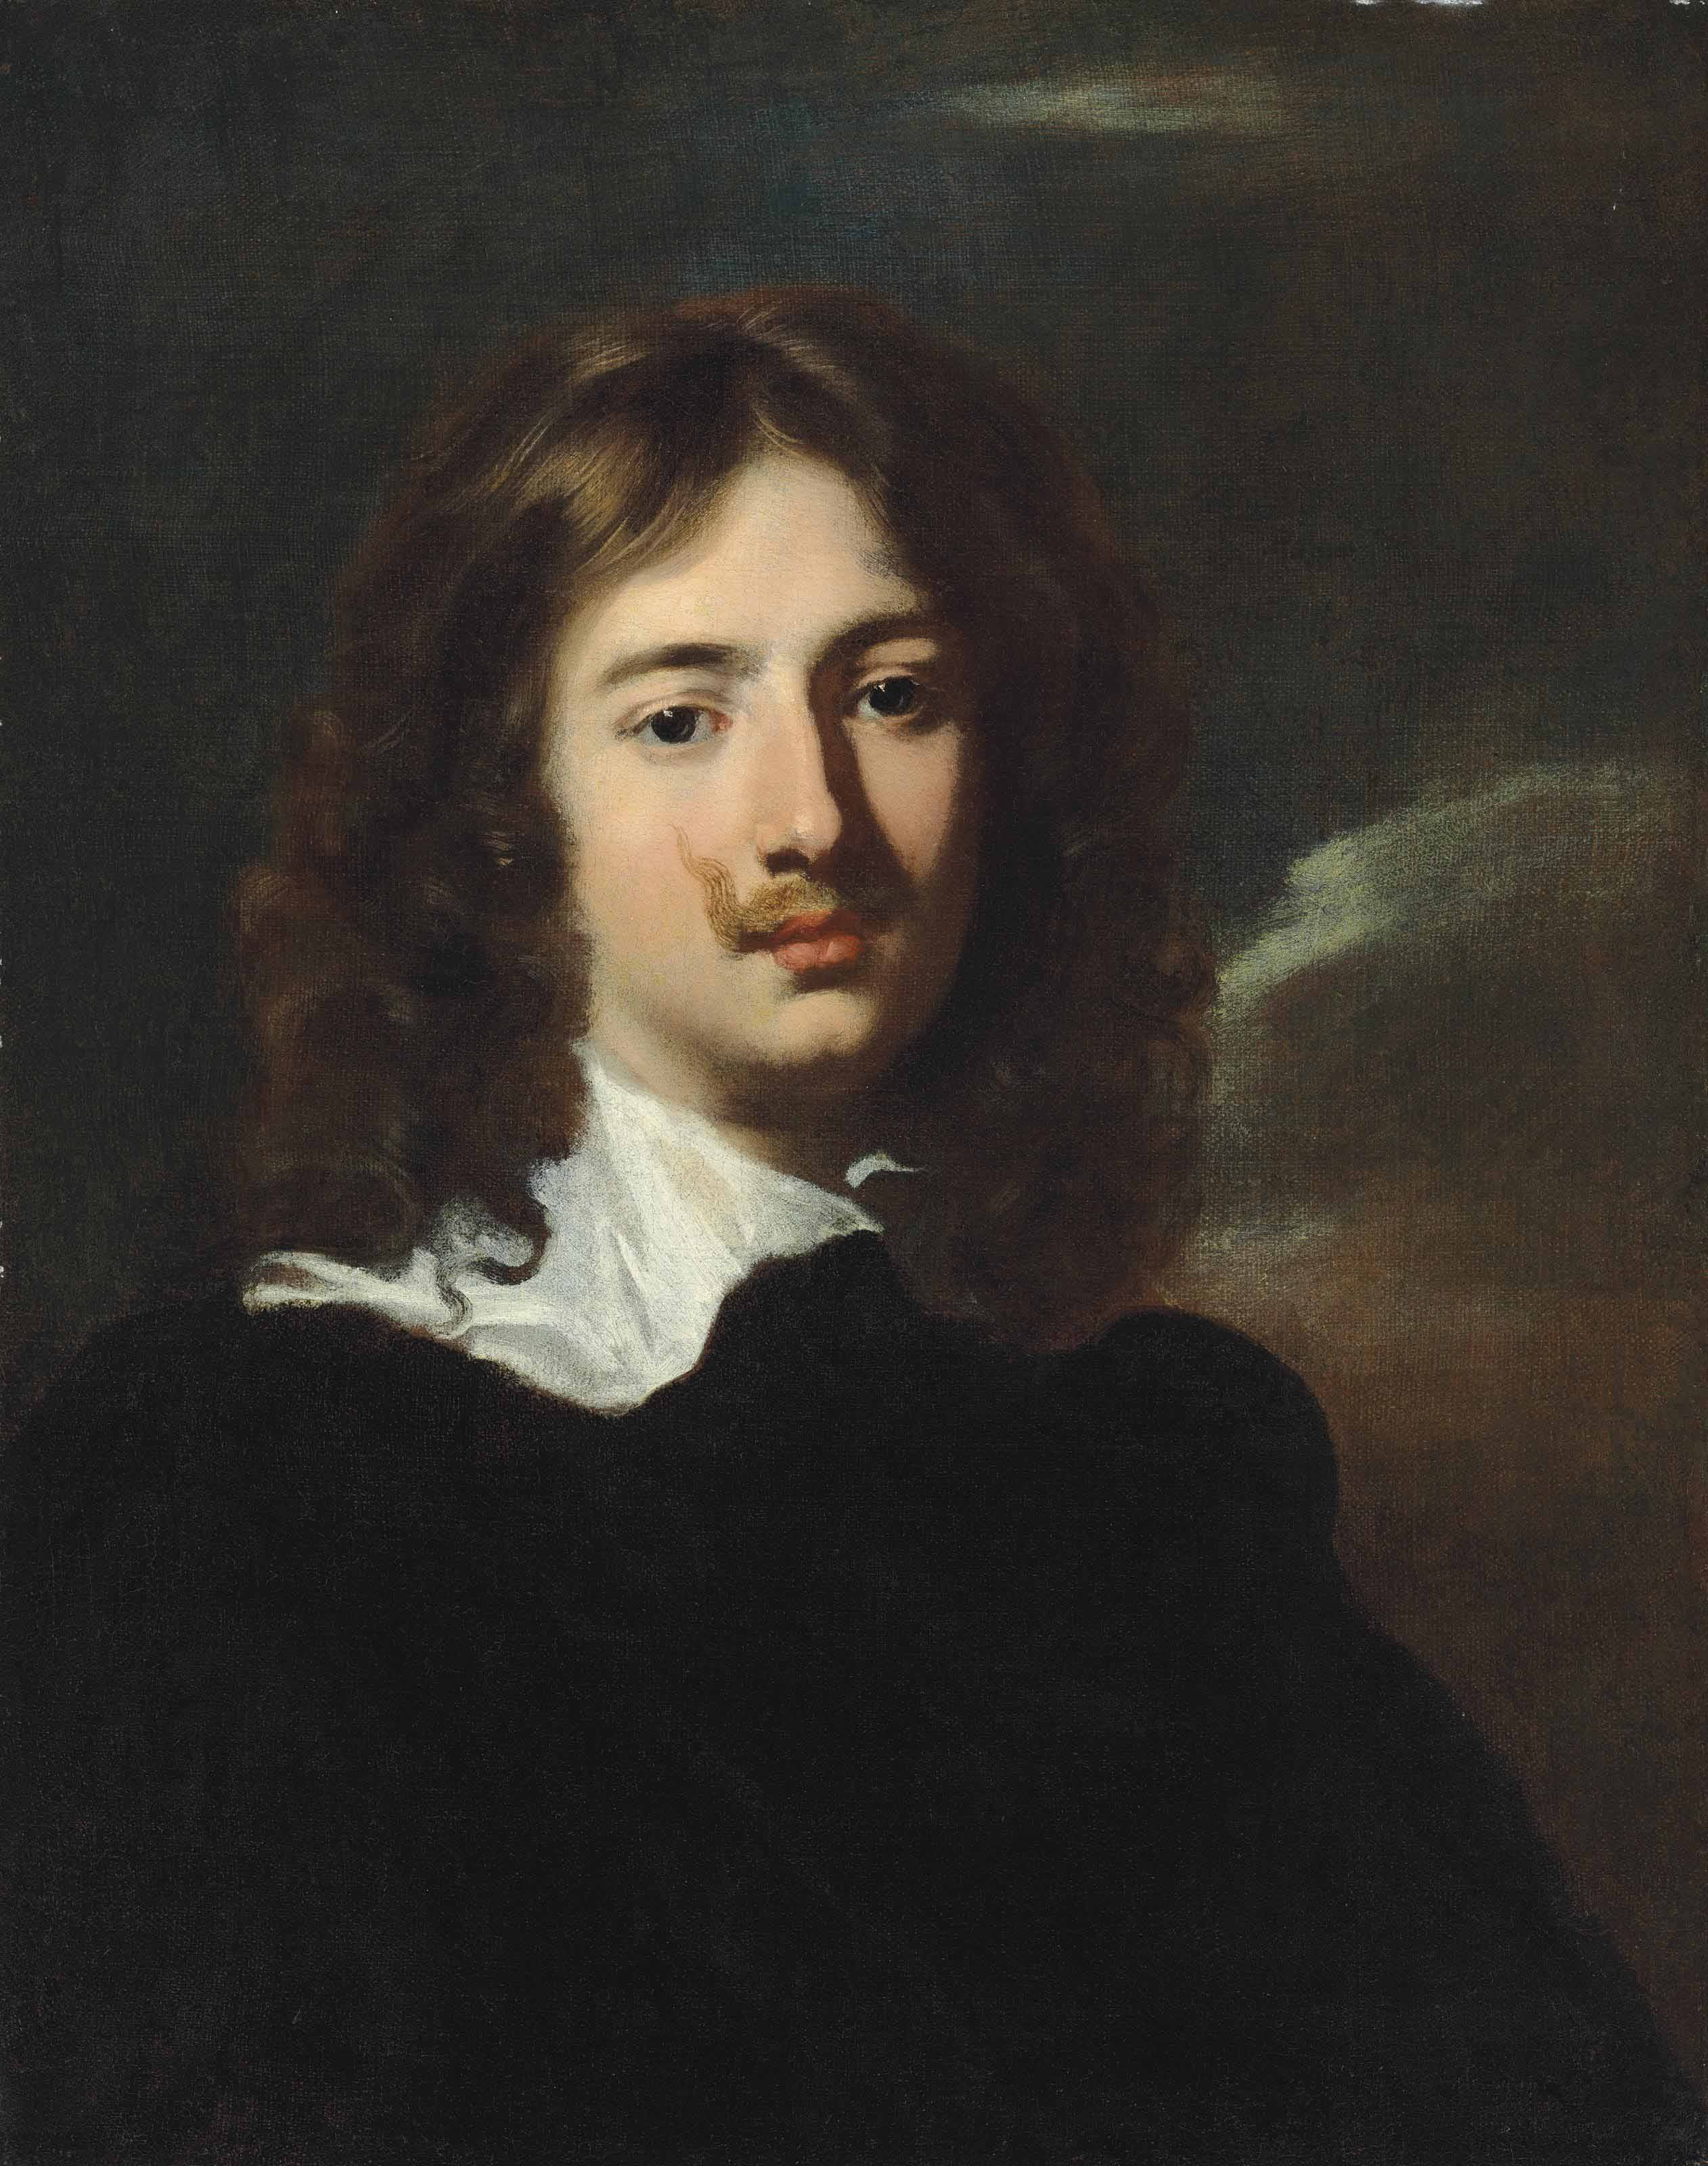 Portrait of a gentleman, bust-length, in a black doublet and white collar